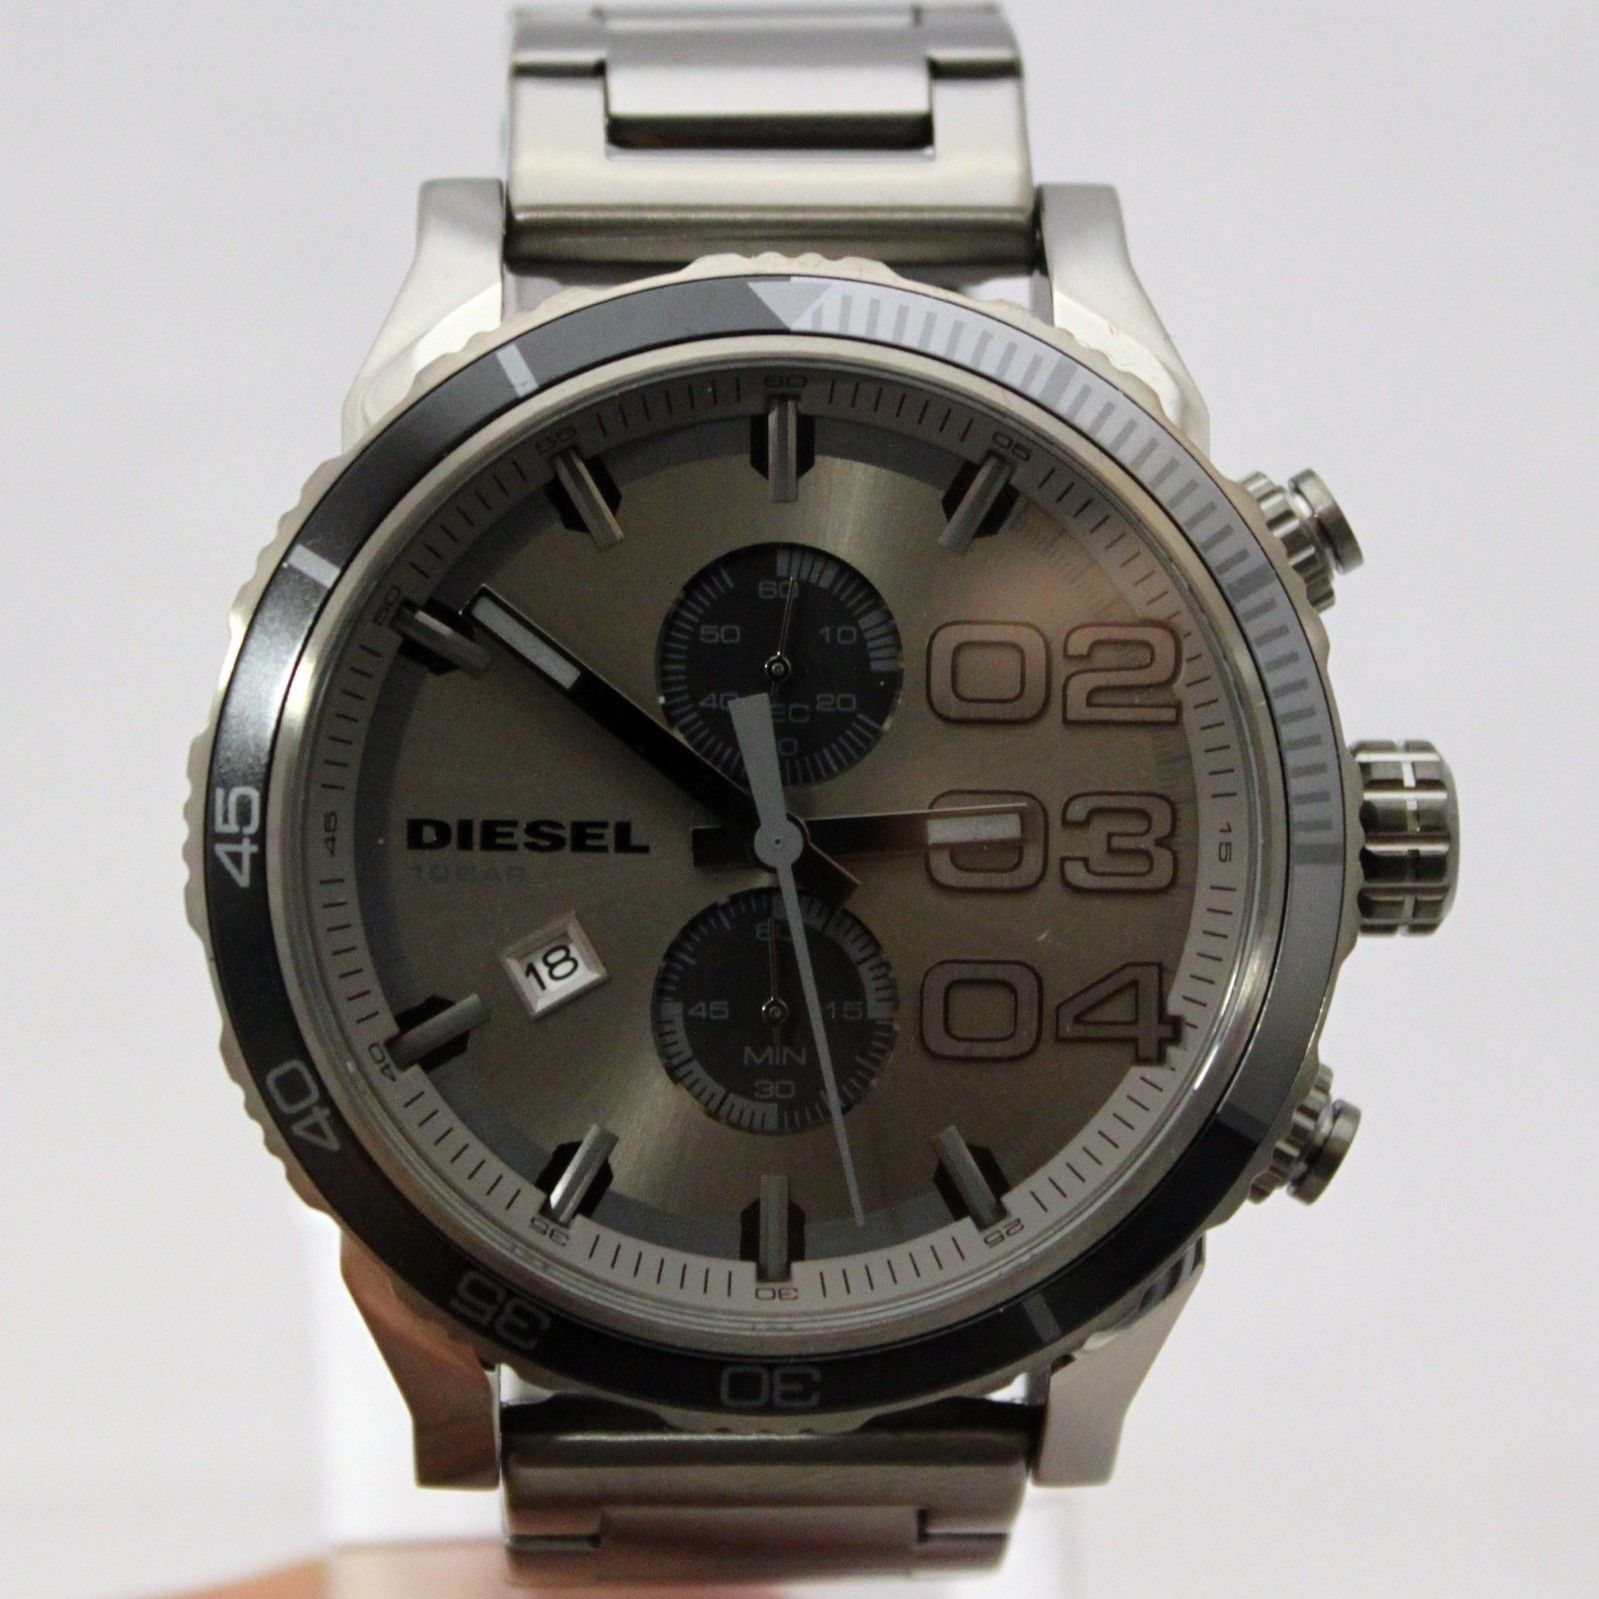 New Diesel DZ4314 Chronograph Double Dawn Gunmetal Stainless Steel Watch for Men